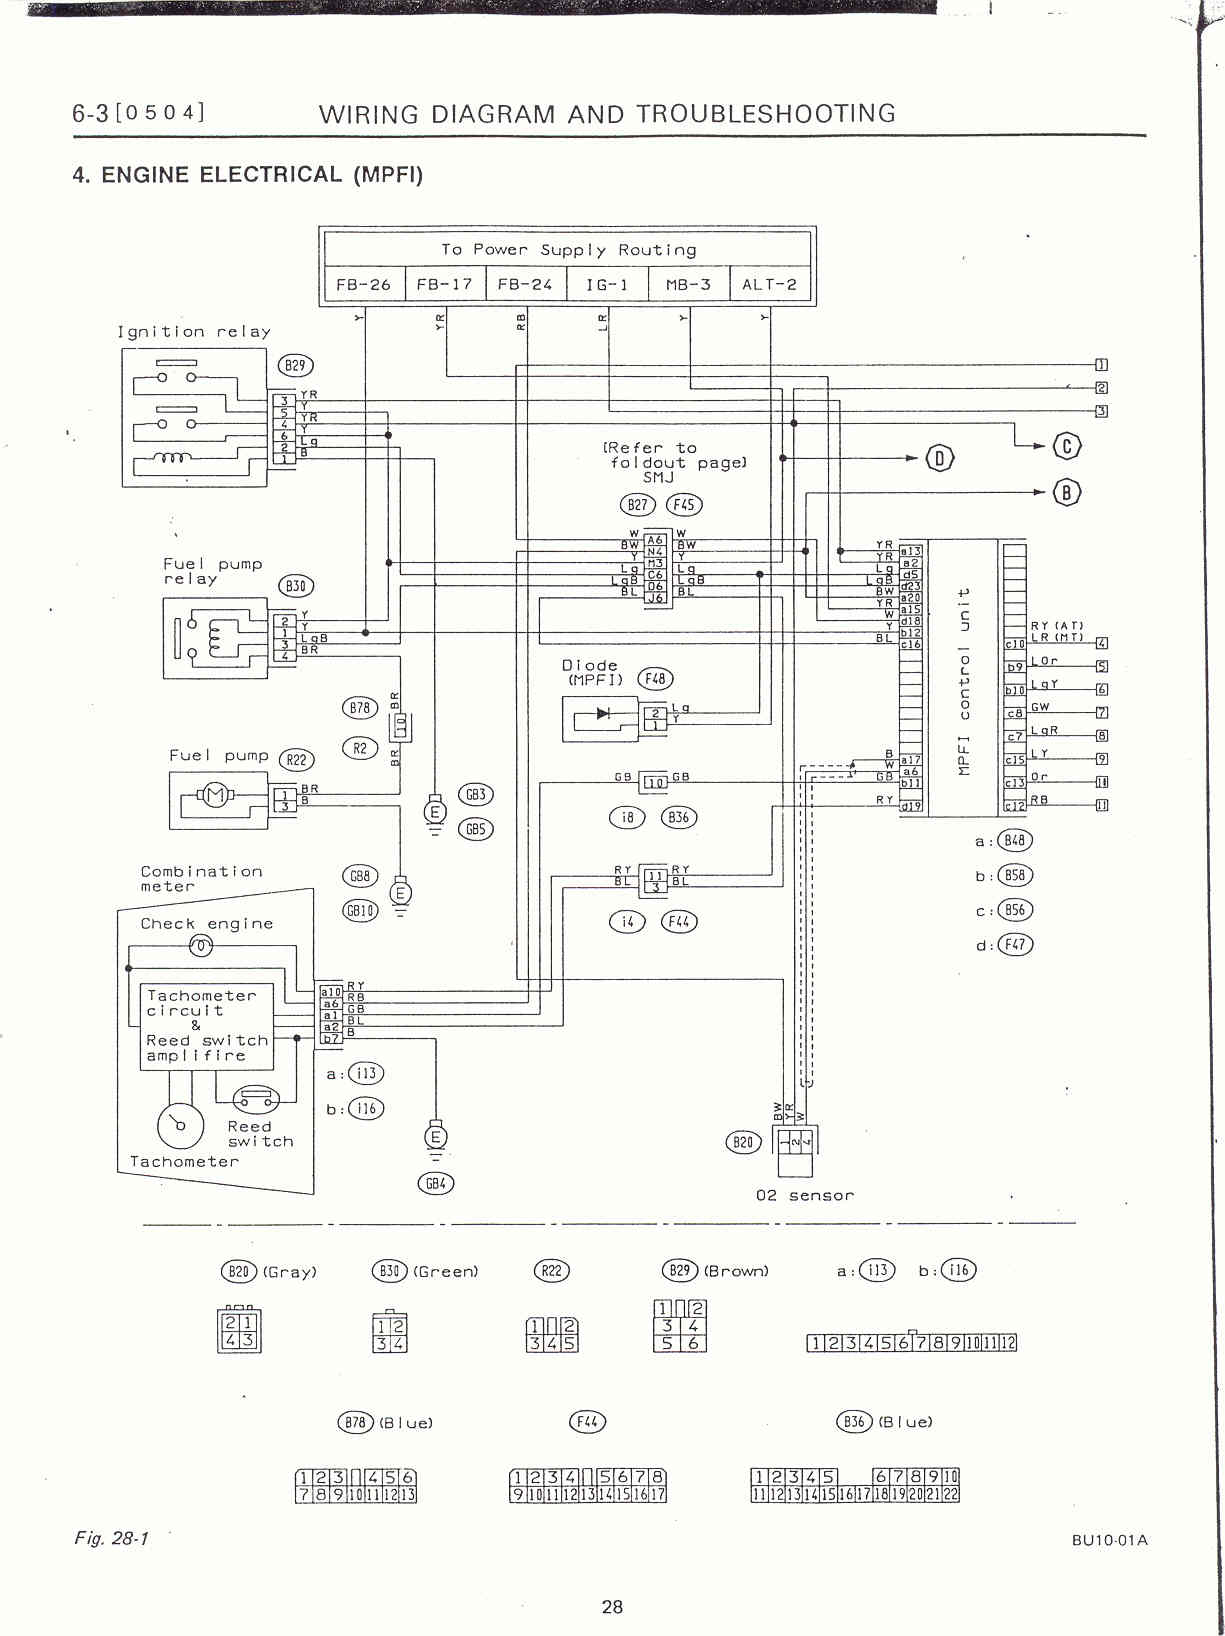 Subaru Legacy Transmission Wiring Diagram Circuit Schematic For 1994 Mazda Miata Engine Surrealmirage Swap Electrical Info Notes Ford Model T